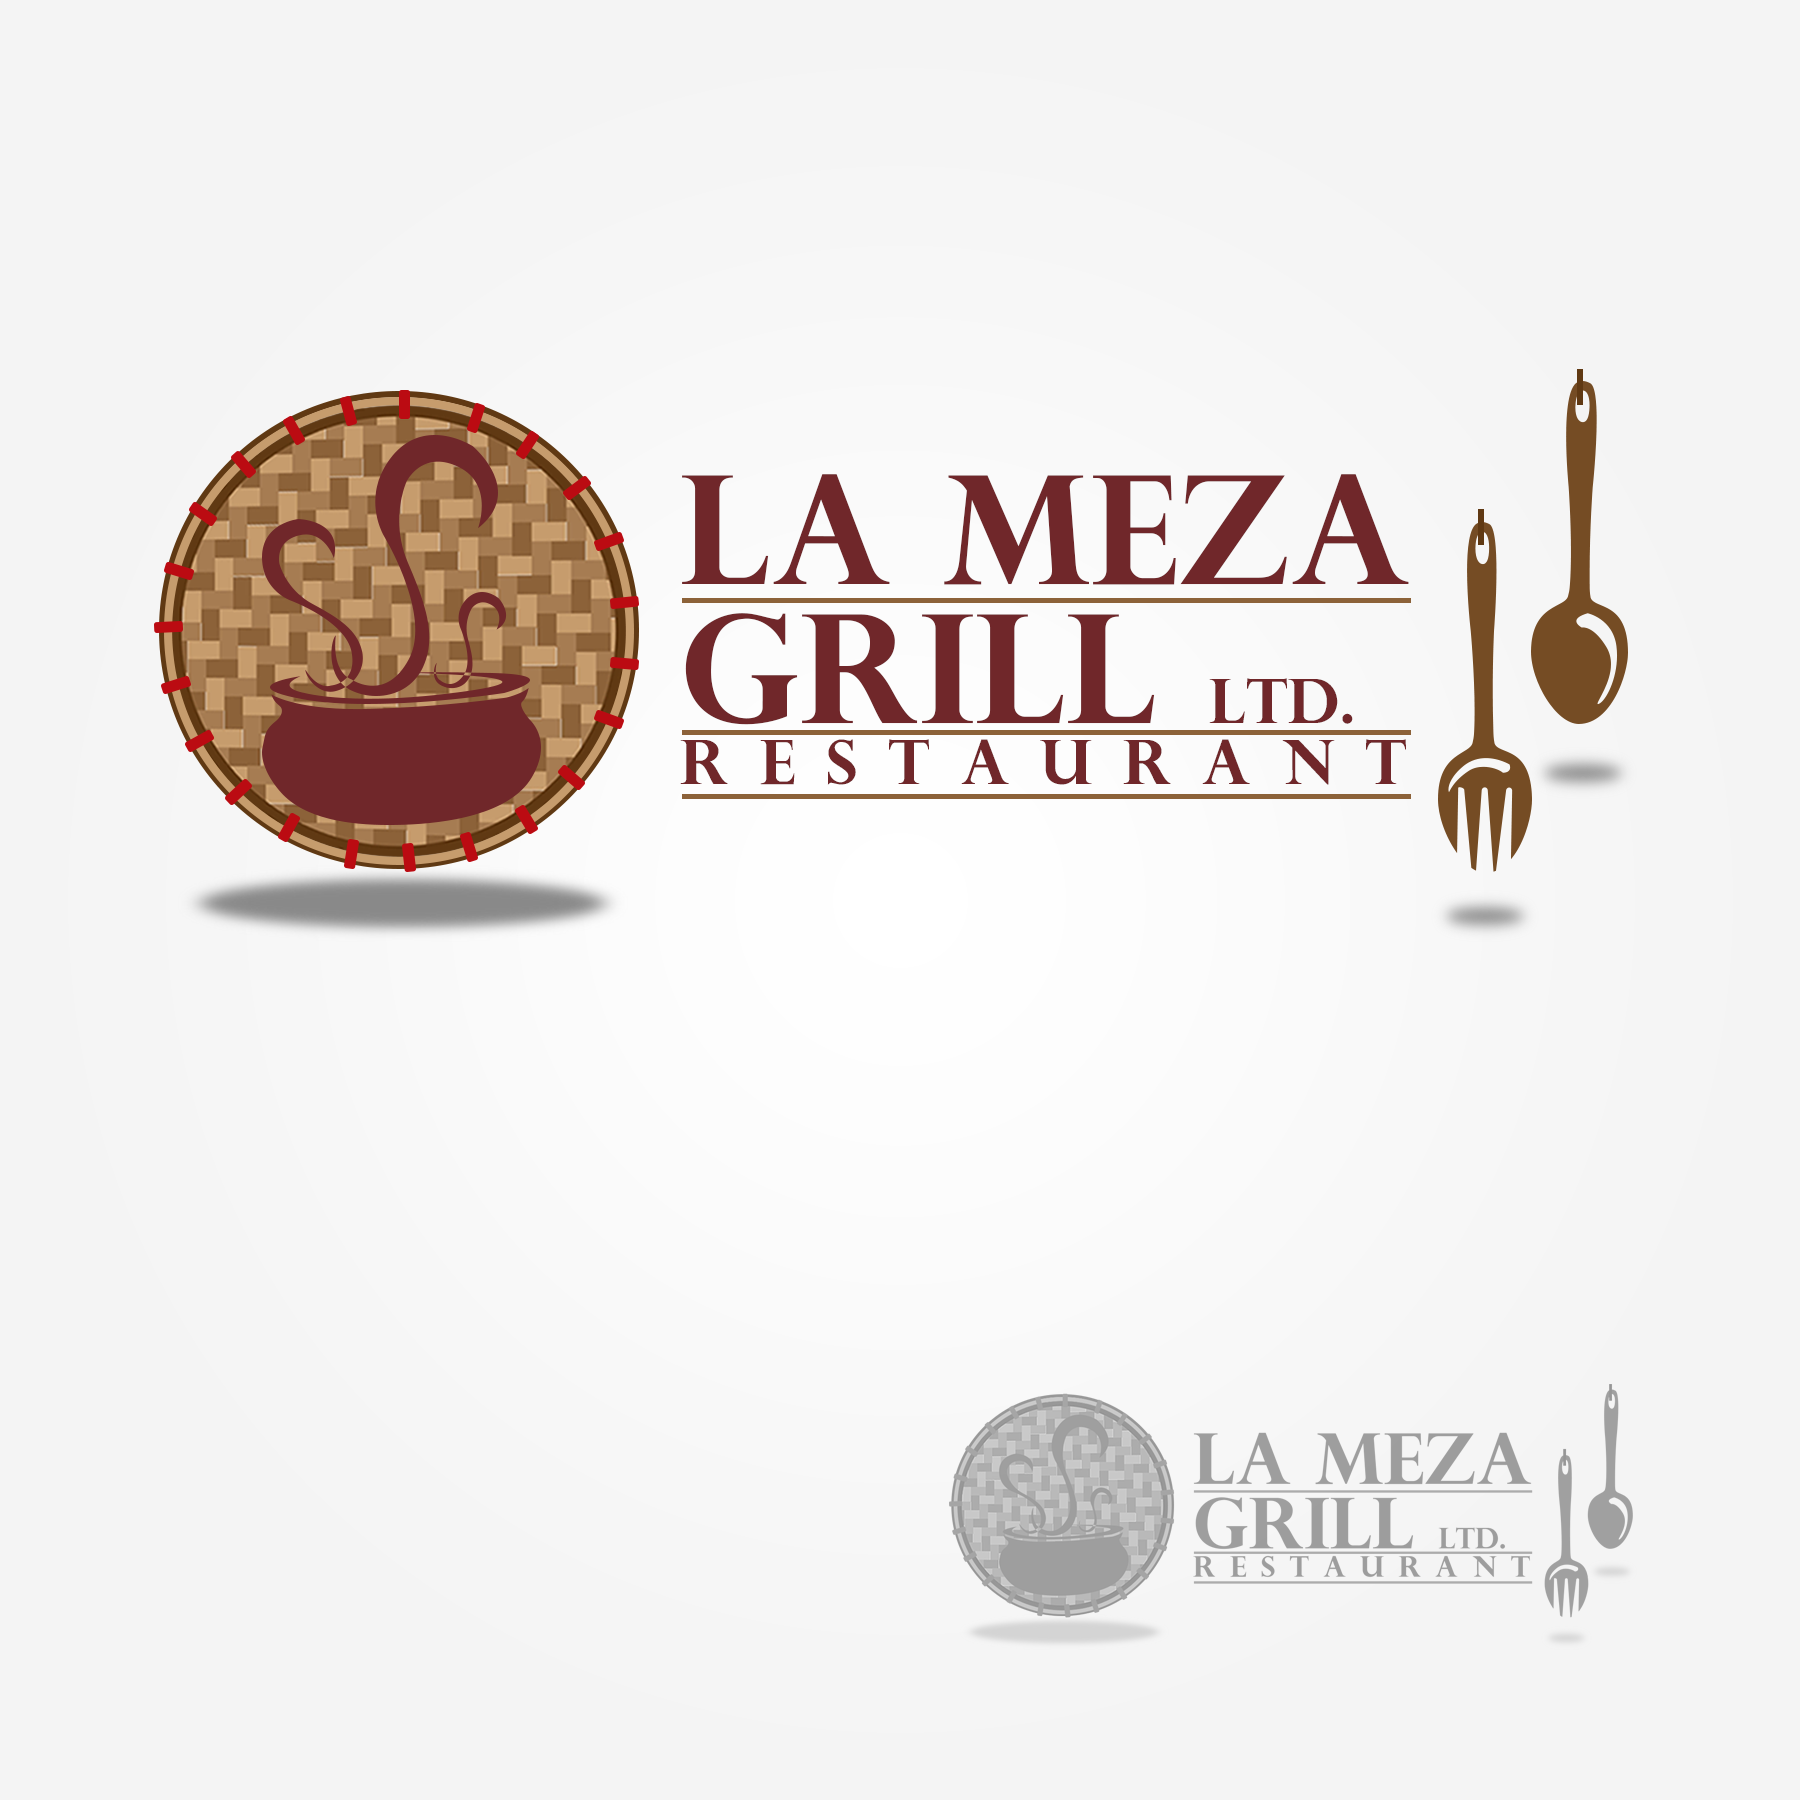 Logo Design by Lemuel Arvin Tanzo - Entry No. 63 in the Logo Design Contest Inspiring Logo Design for La Meza Grill Ltd..